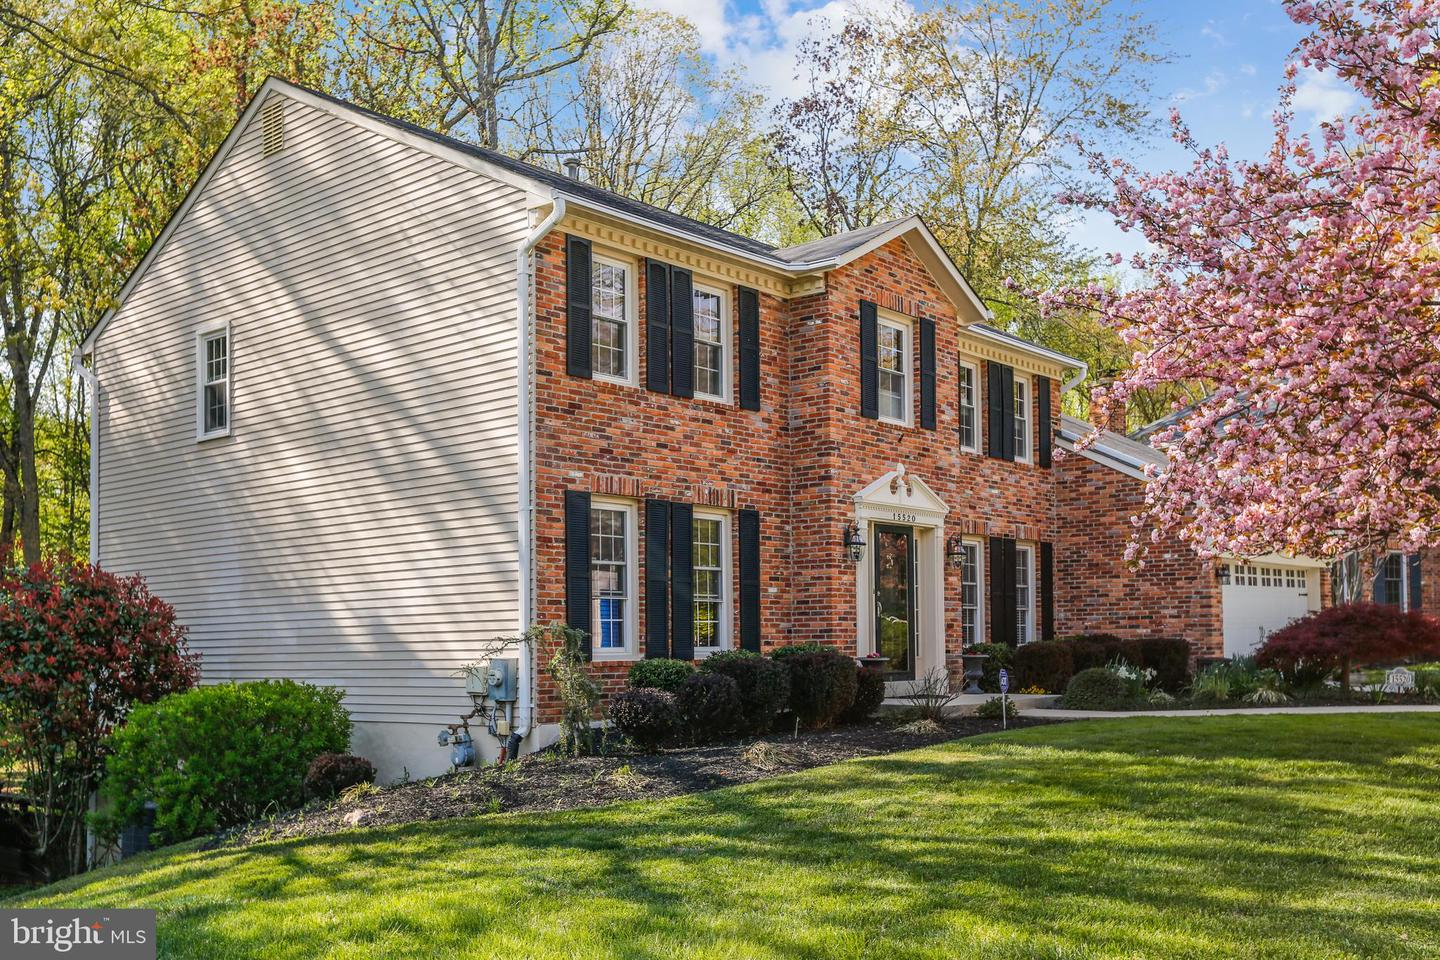 15520 LANGSIDE ST, SILVER SPRING, Maryland 20905, 4 Bedrooms Bedrooms, ,4 BathroomsBathrooms,Single Family,For Sale,15520 LANGSIDE ST,MDMC754028